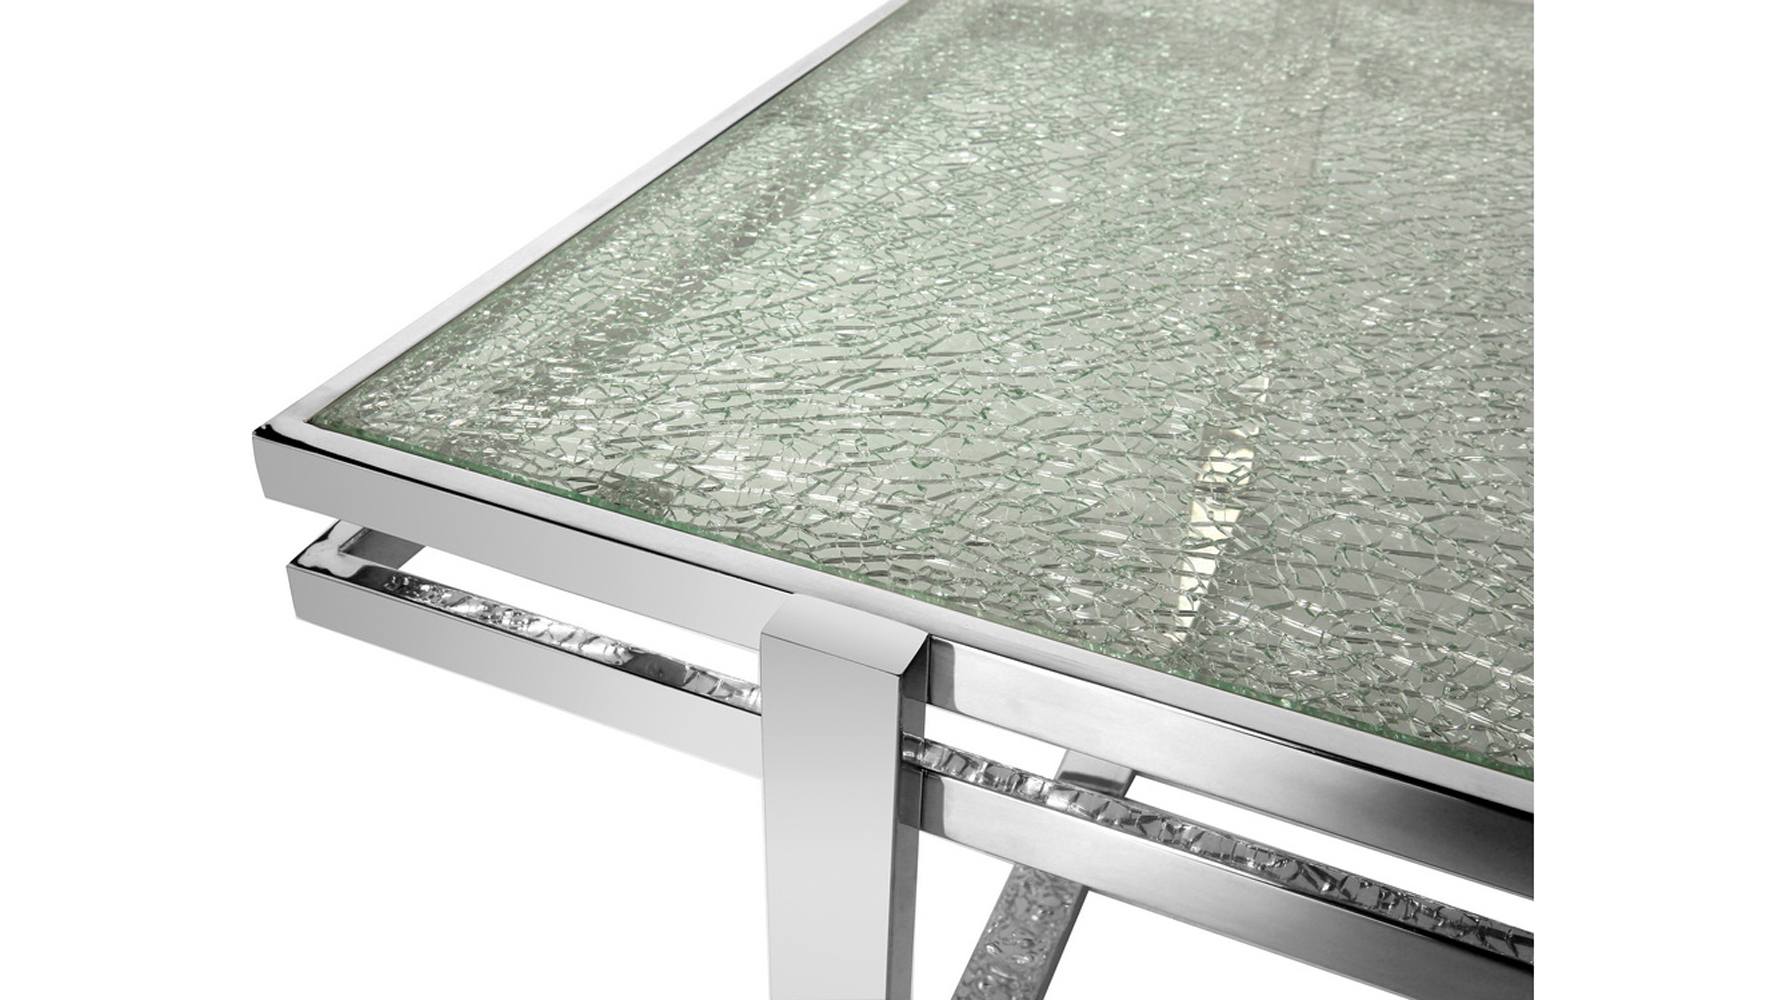 Mosaic Dining Table Cracked Glass Top Stainless Steel Bas | Zuri Furniture